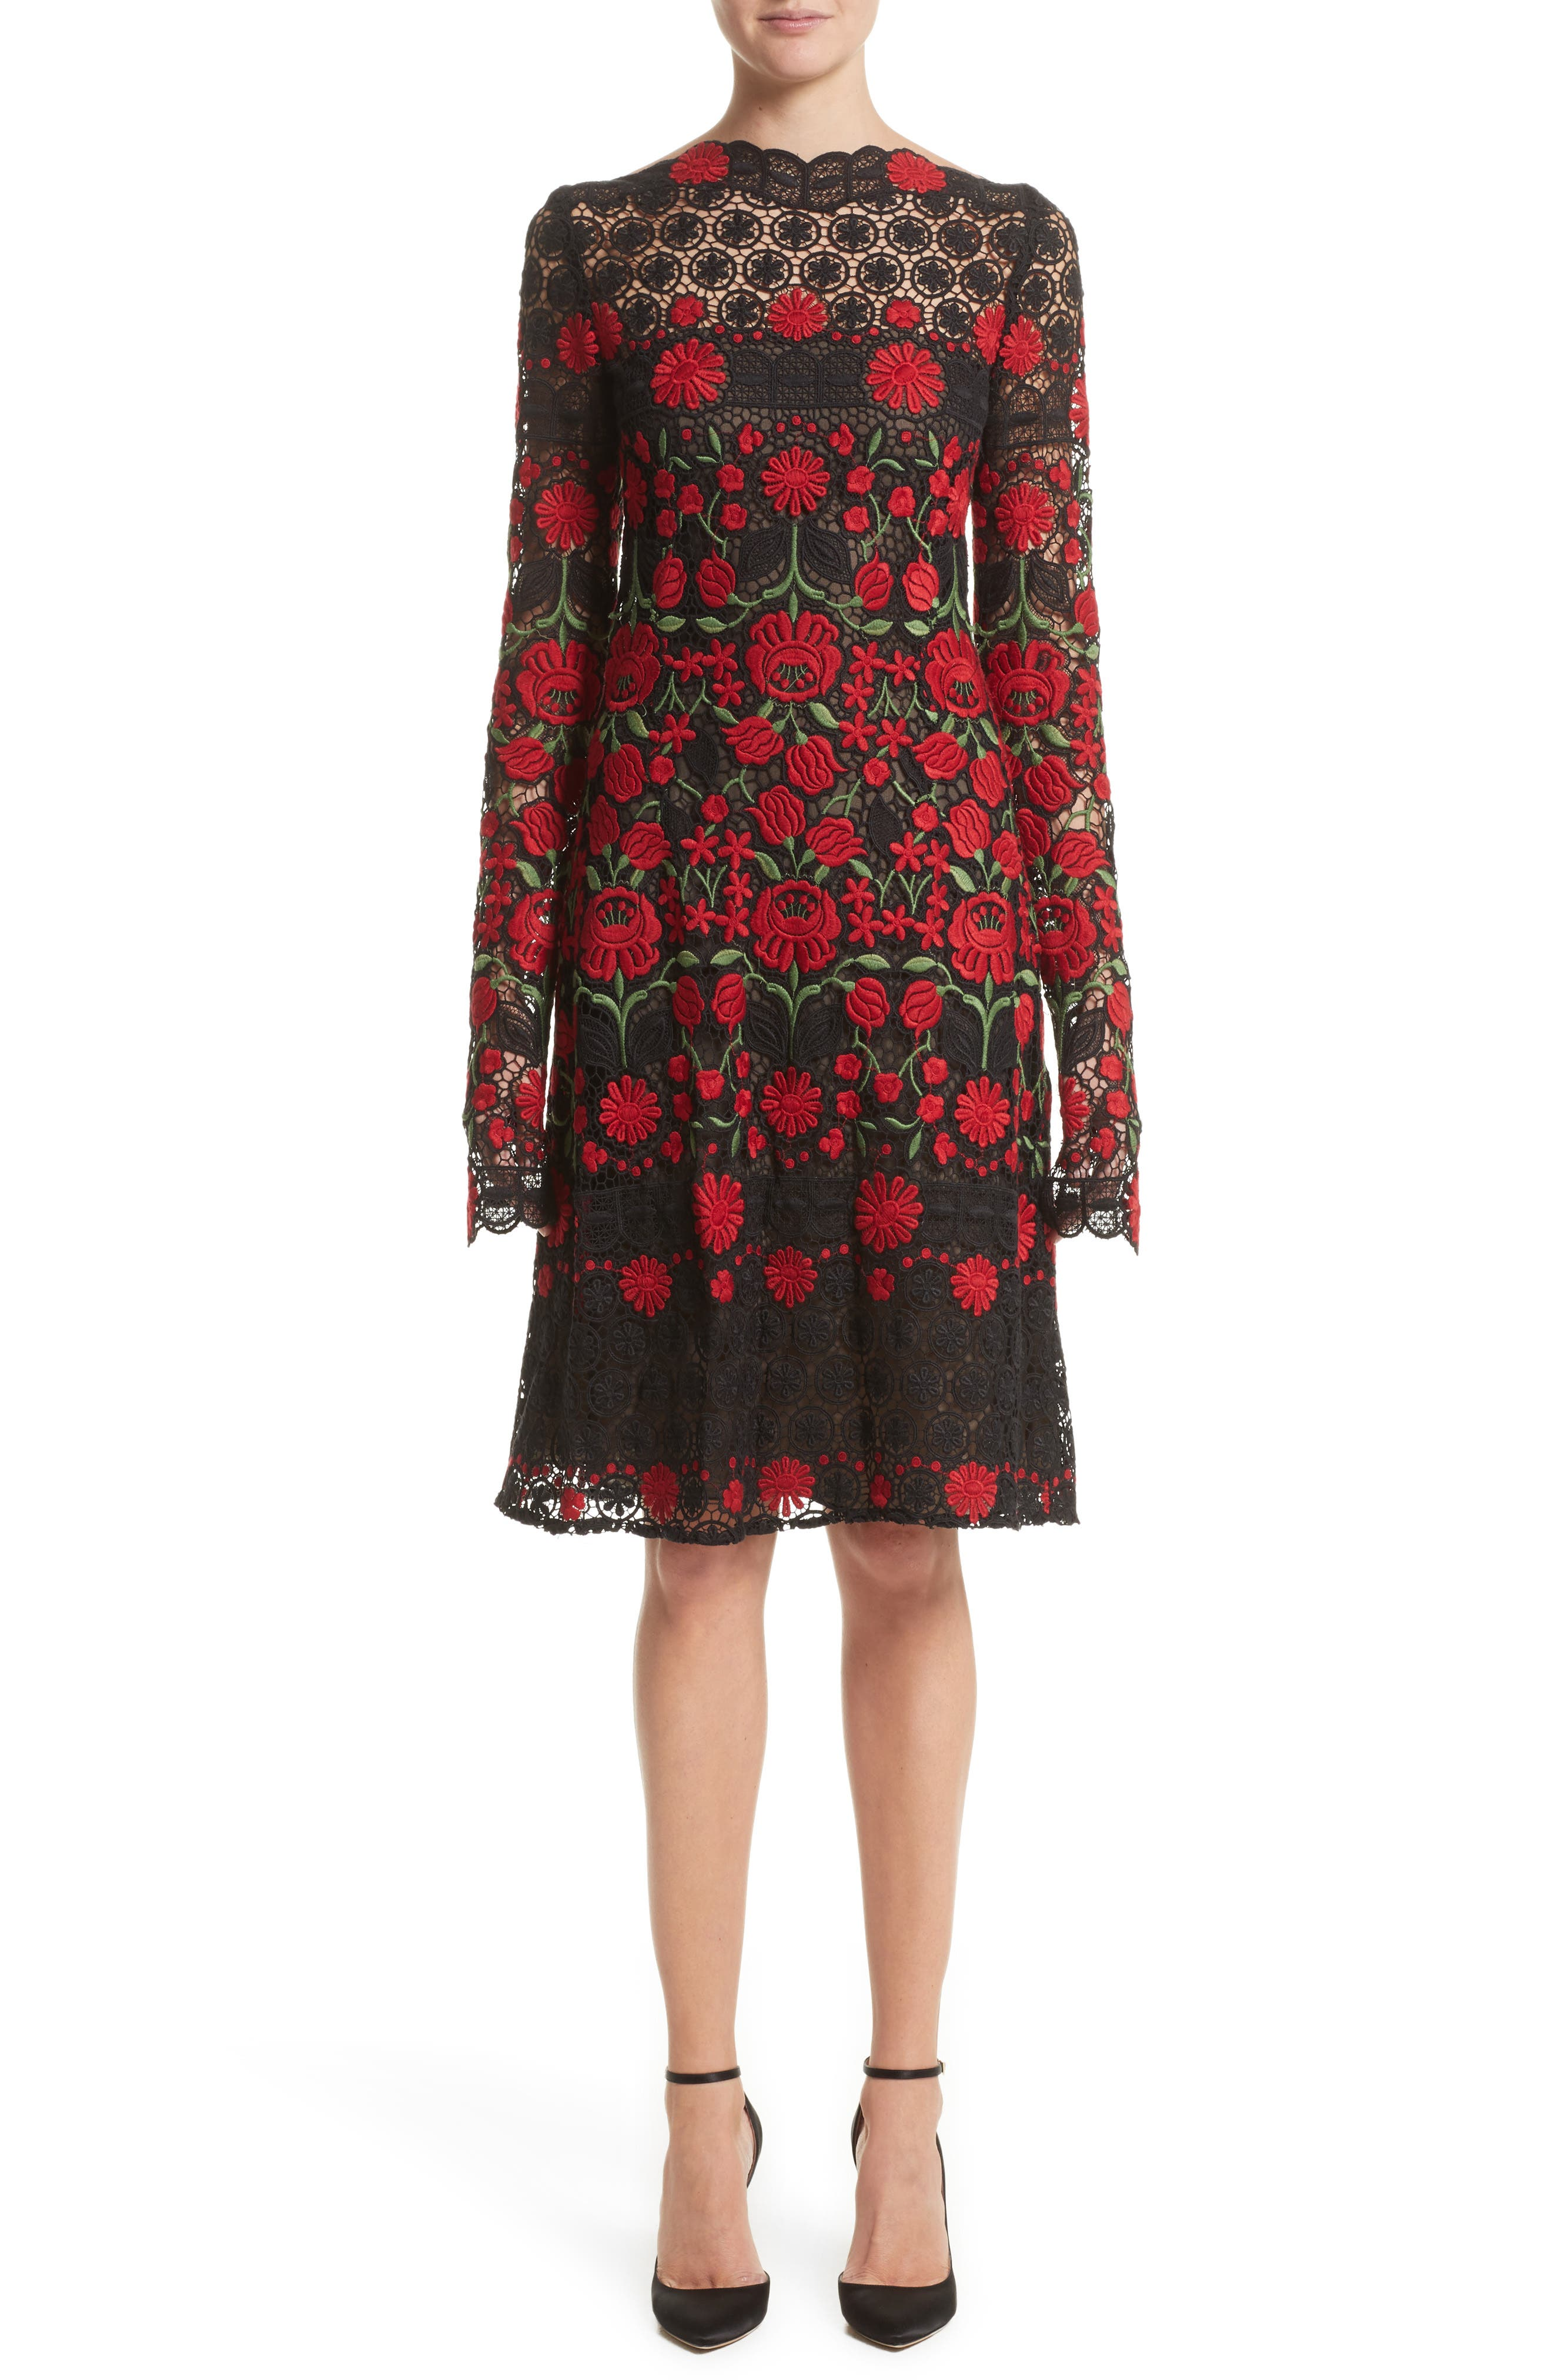 Main Image - Naeem Khan Floral Embroidered Elongated Sleeve Dress